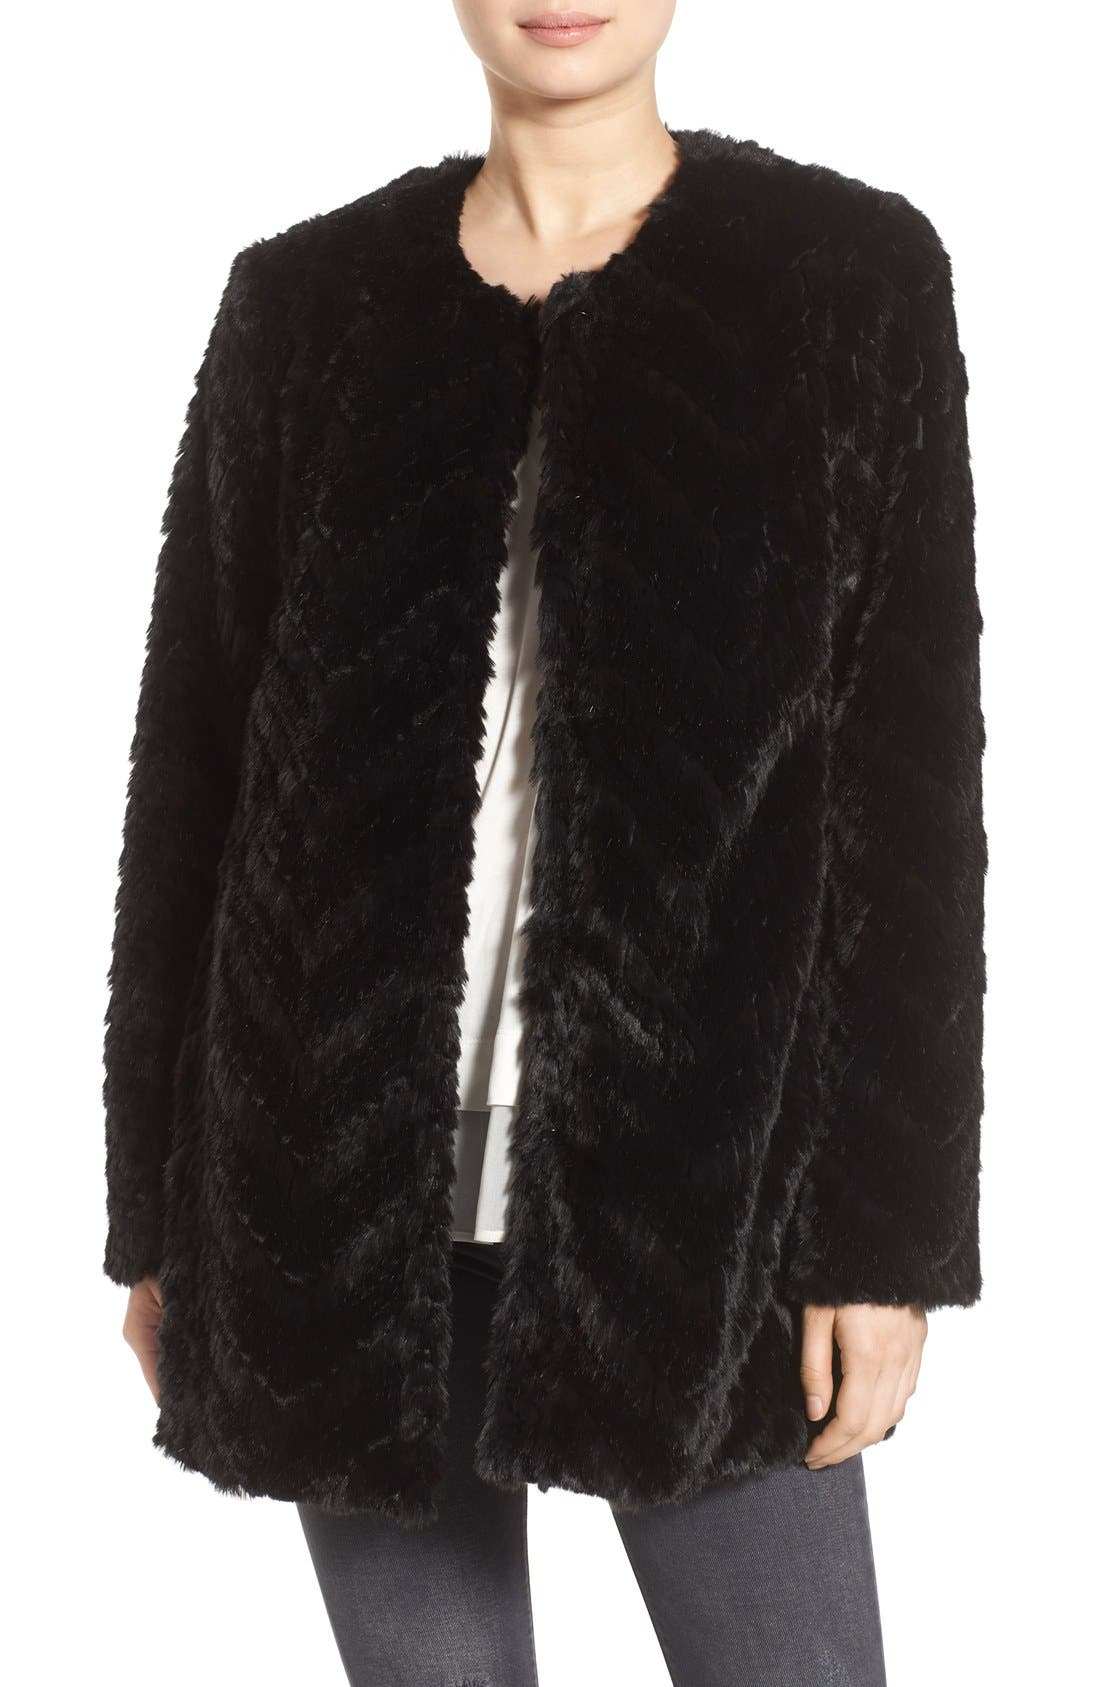 Tiered Faux Fur Topper,                             Main thumbnail 1, color,                             001